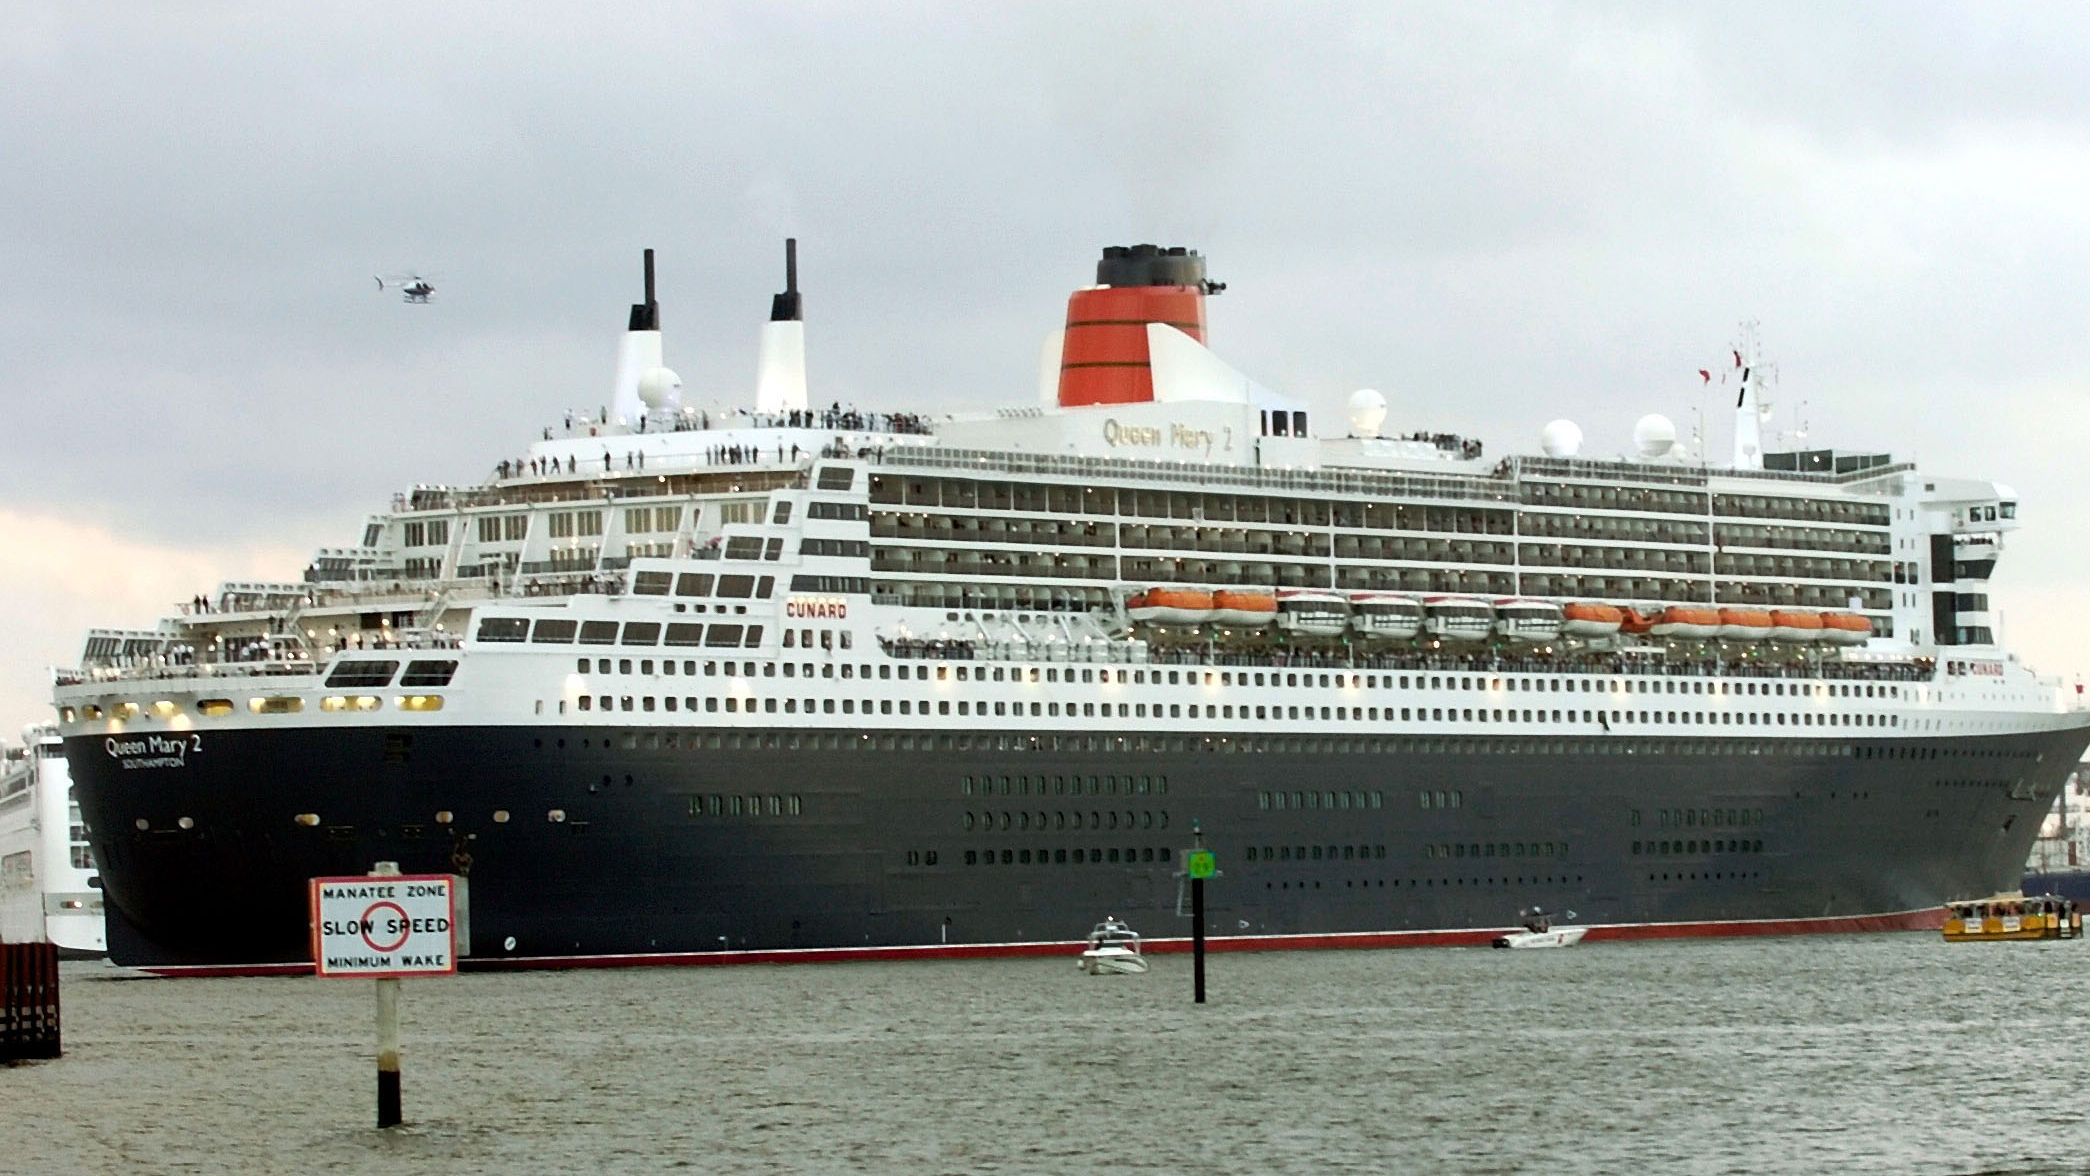 Queen Mary 2 and norovirus